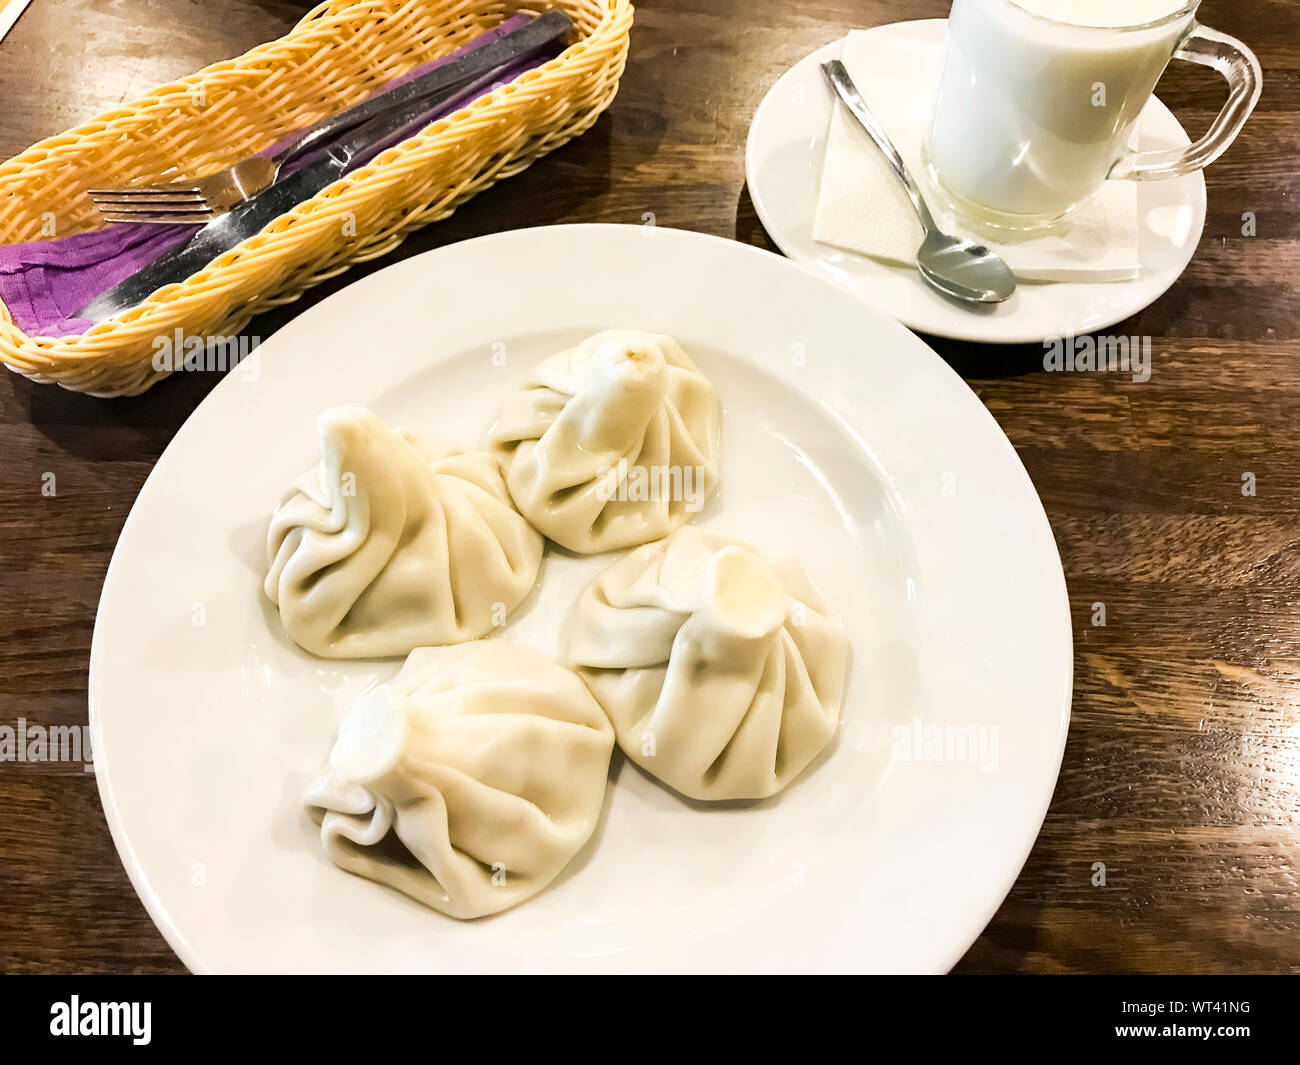 Dishes of Georgian cuisine. Khinkali with meat on plate. Studio Photo Stock Photo